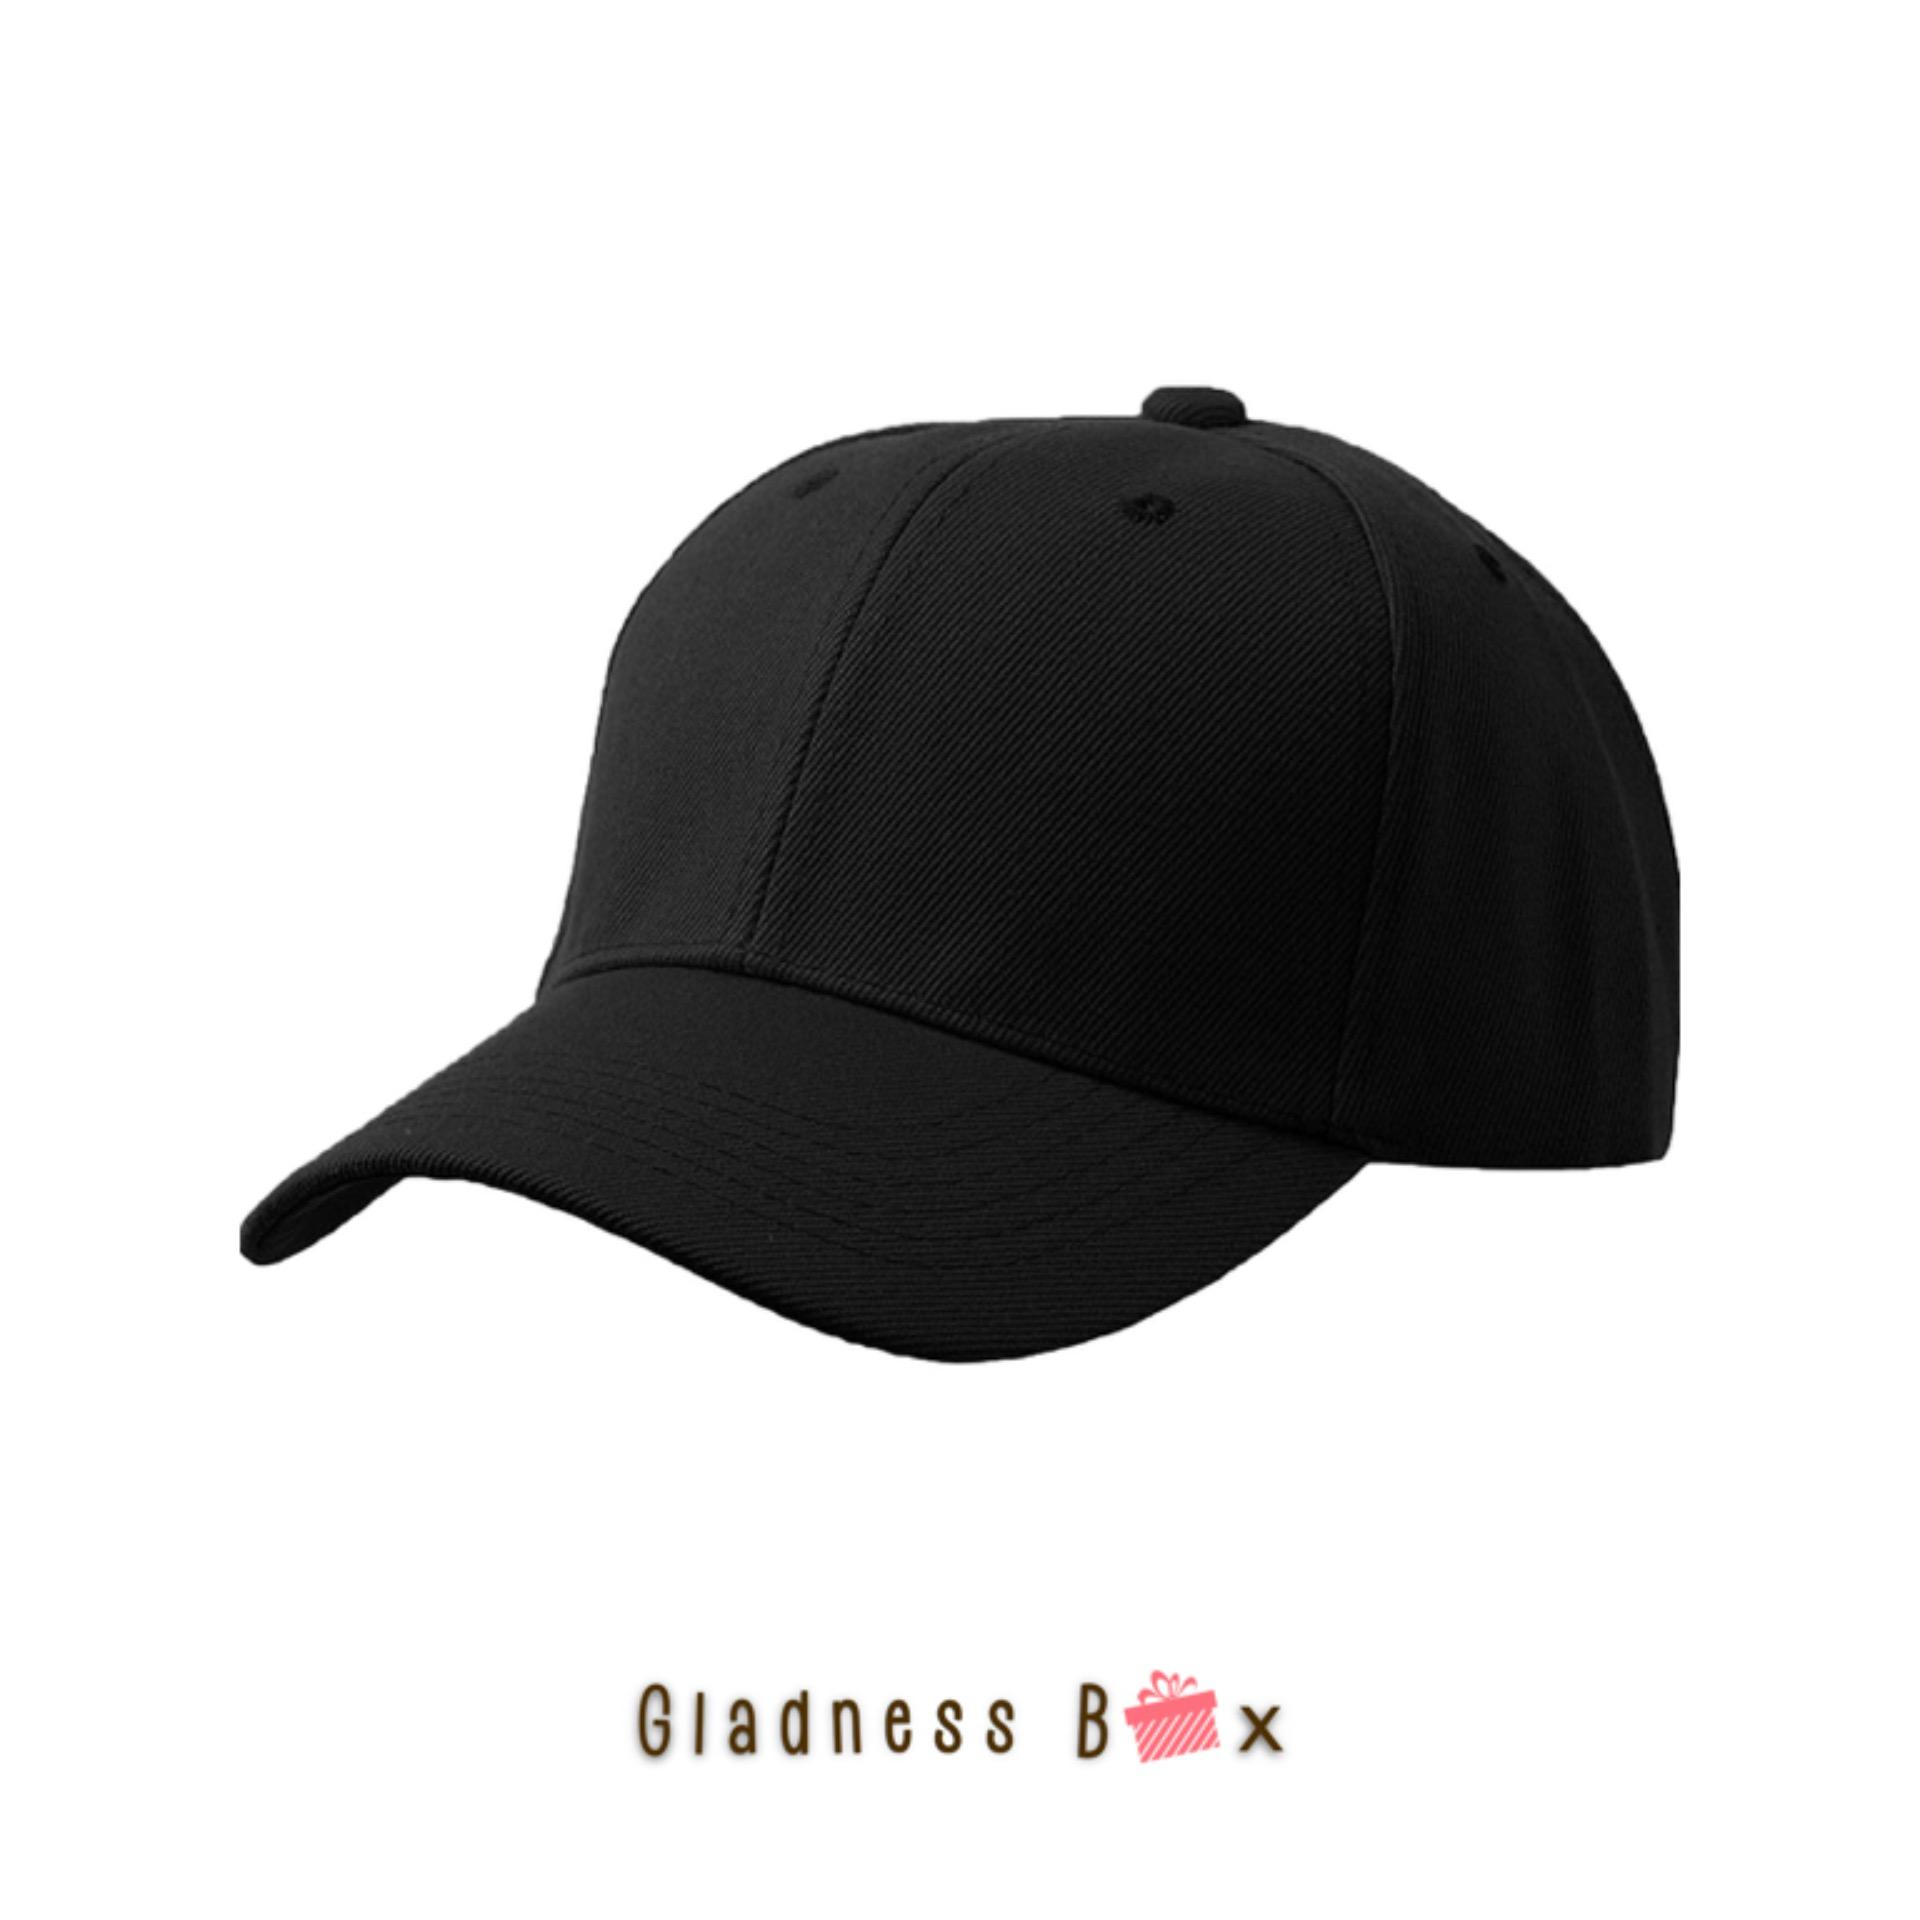 2cee2bbafe5 Gladness Box High Quality Plain Baseball Cap for Men Women Unisex